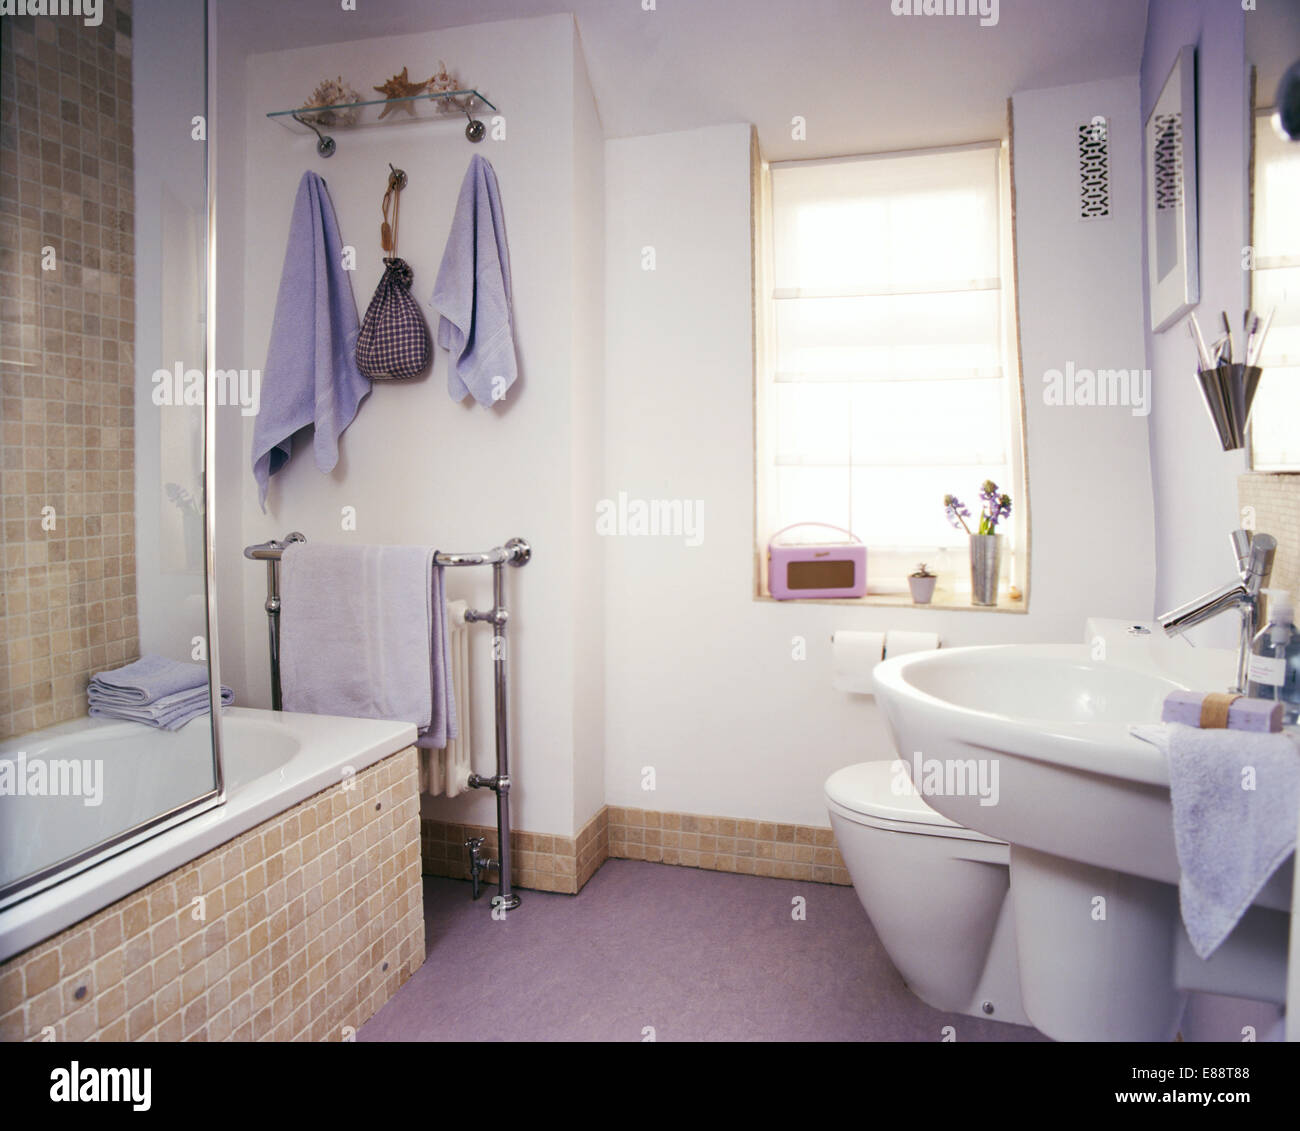 Beige mosaic tiled bath surround and skirting board in modern bathroom with  mauve towels and pink Roberts radio. Beige mosaic tiled bath surround and skirting board in modern